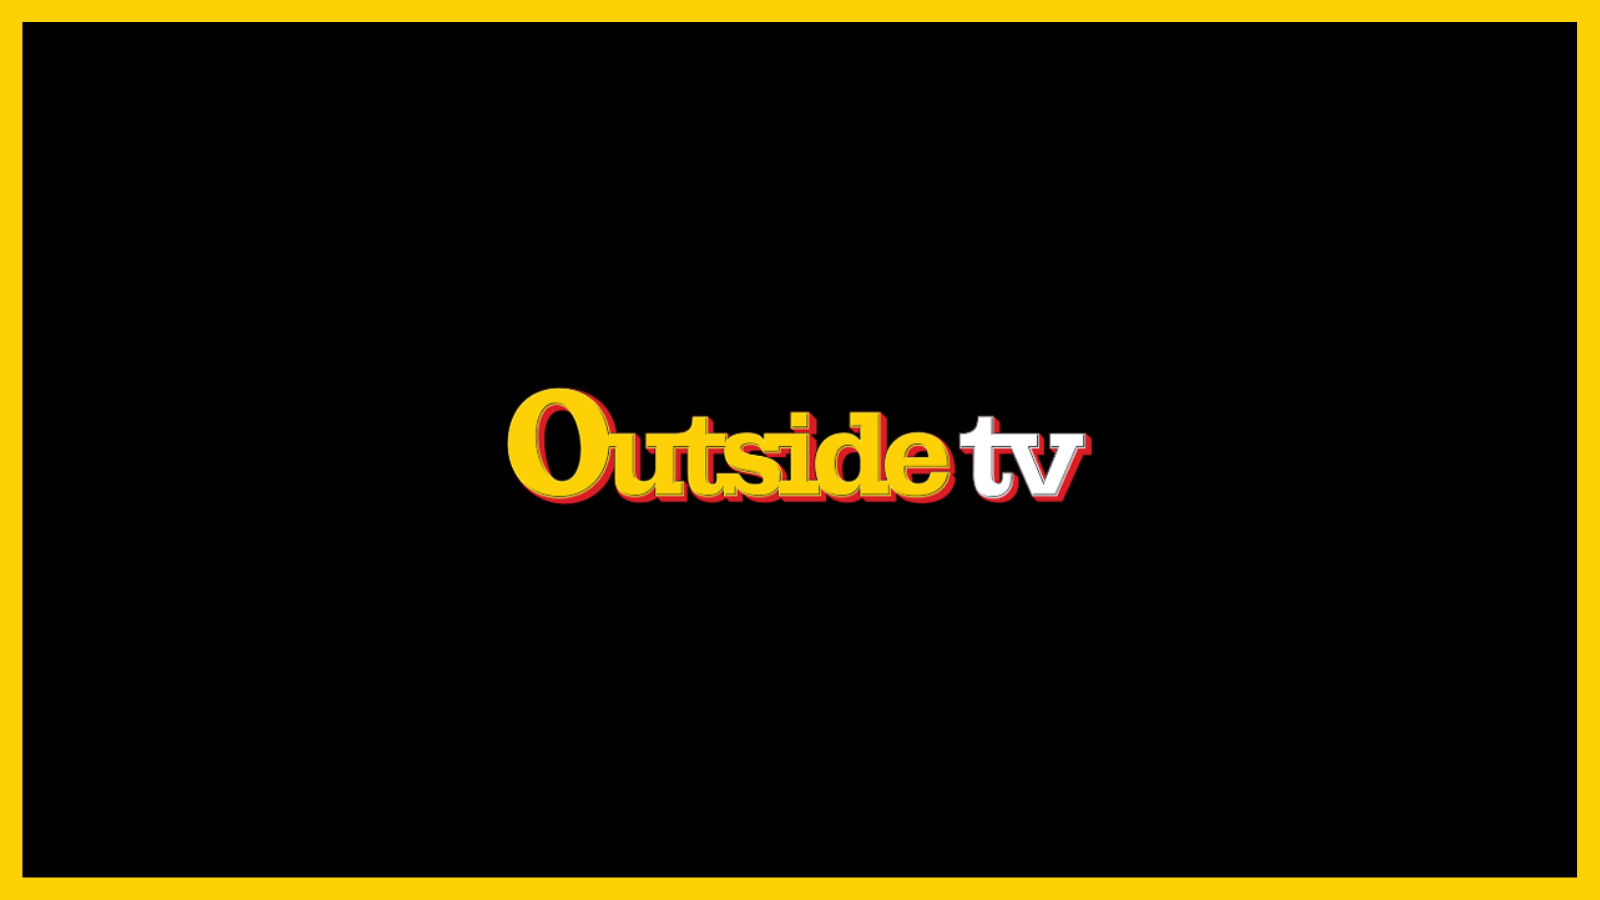 How to Watch Outside TV Online Without Cable: Go Out and Do